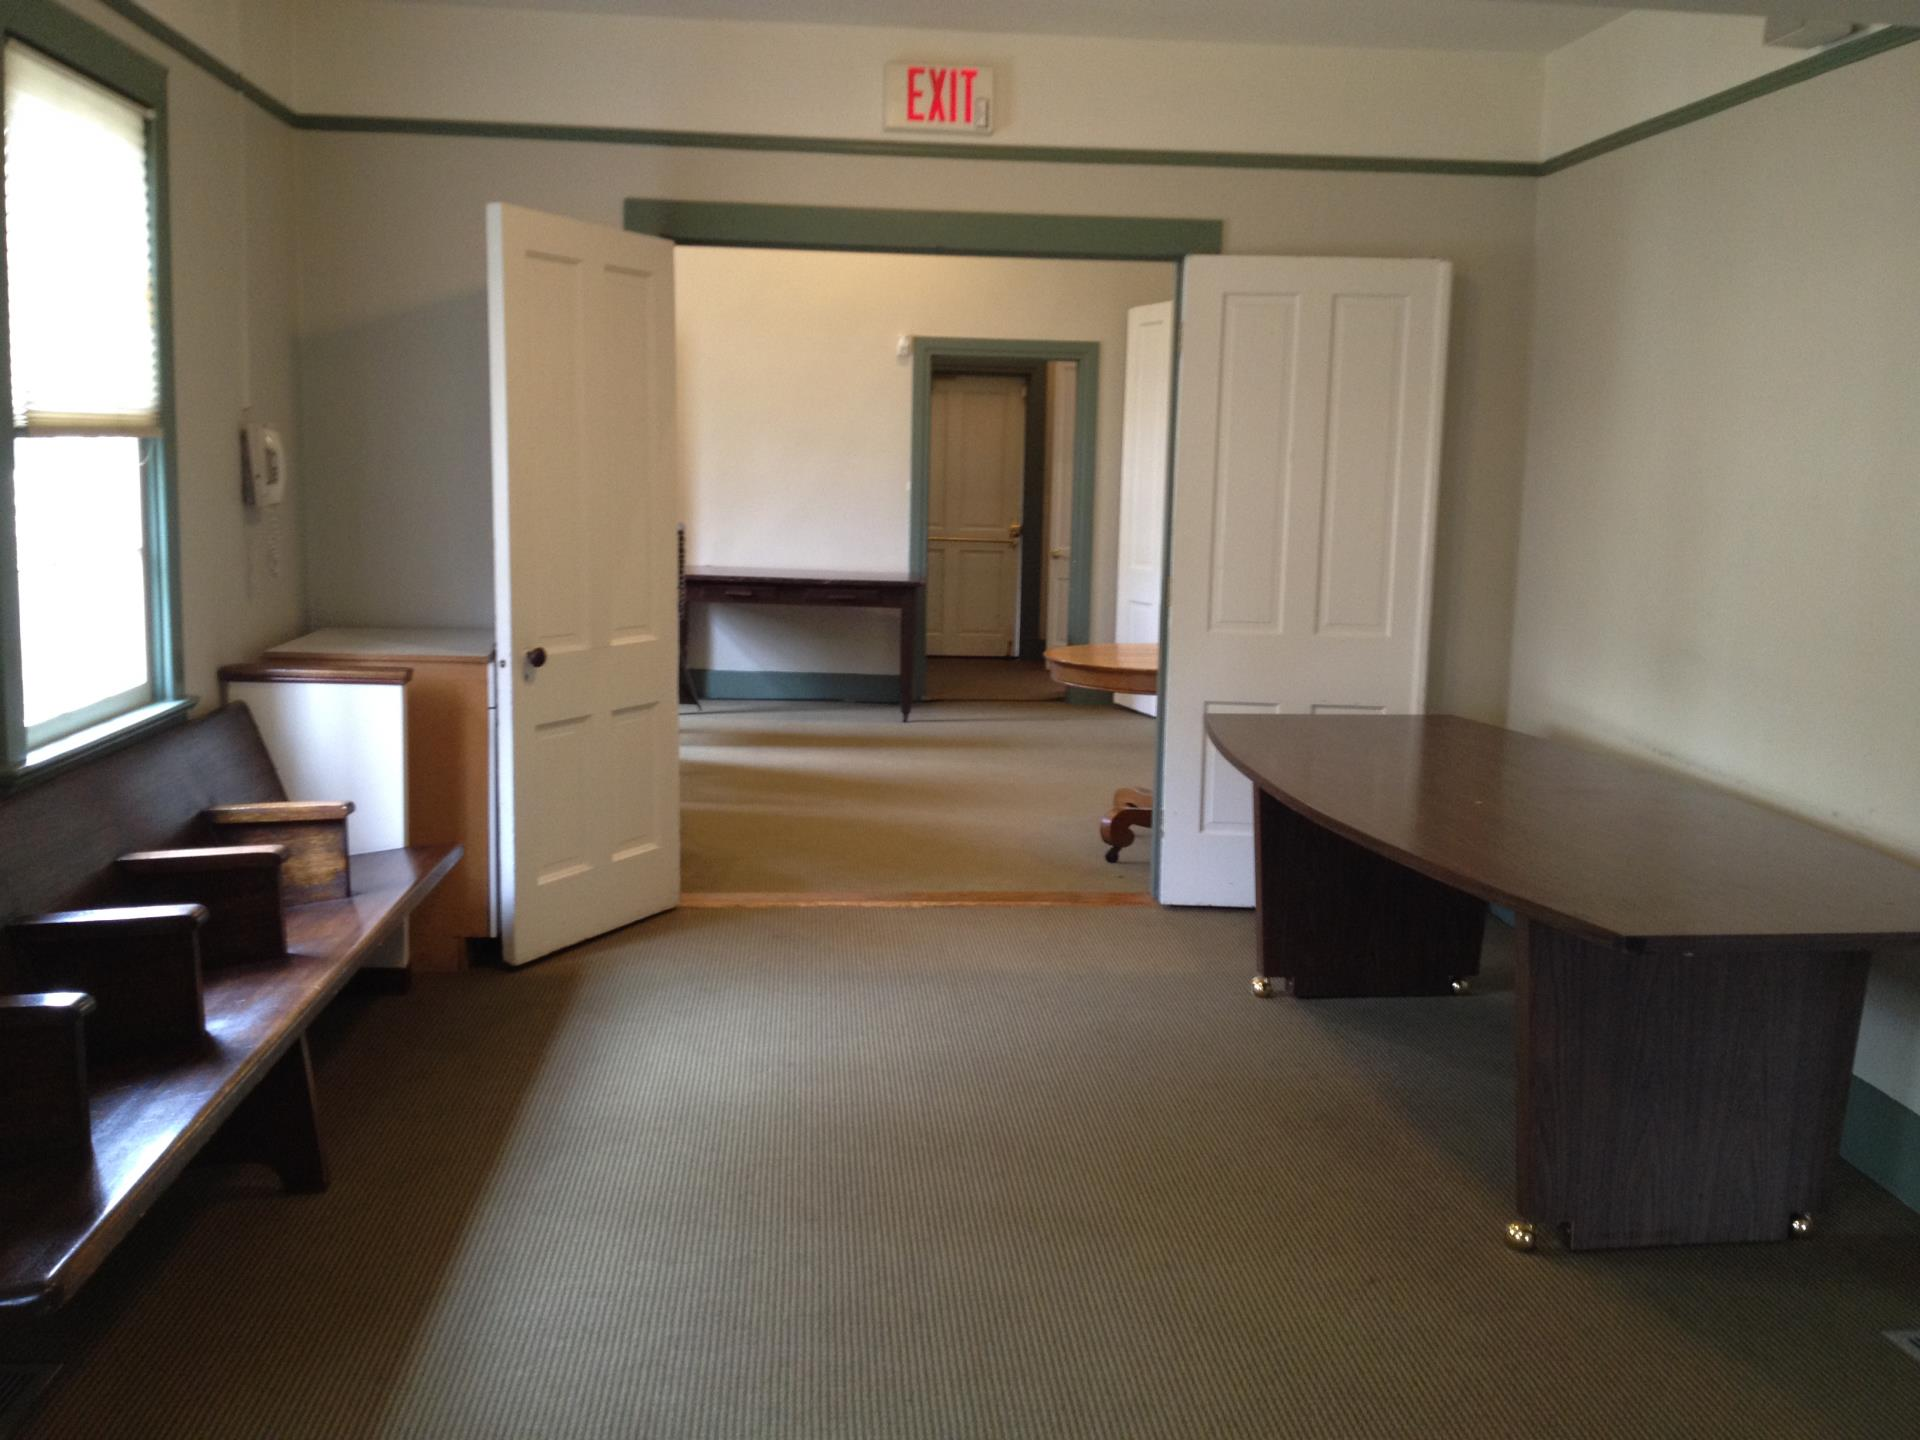 Town Hall Anteroom and Piano Room from Kitchen